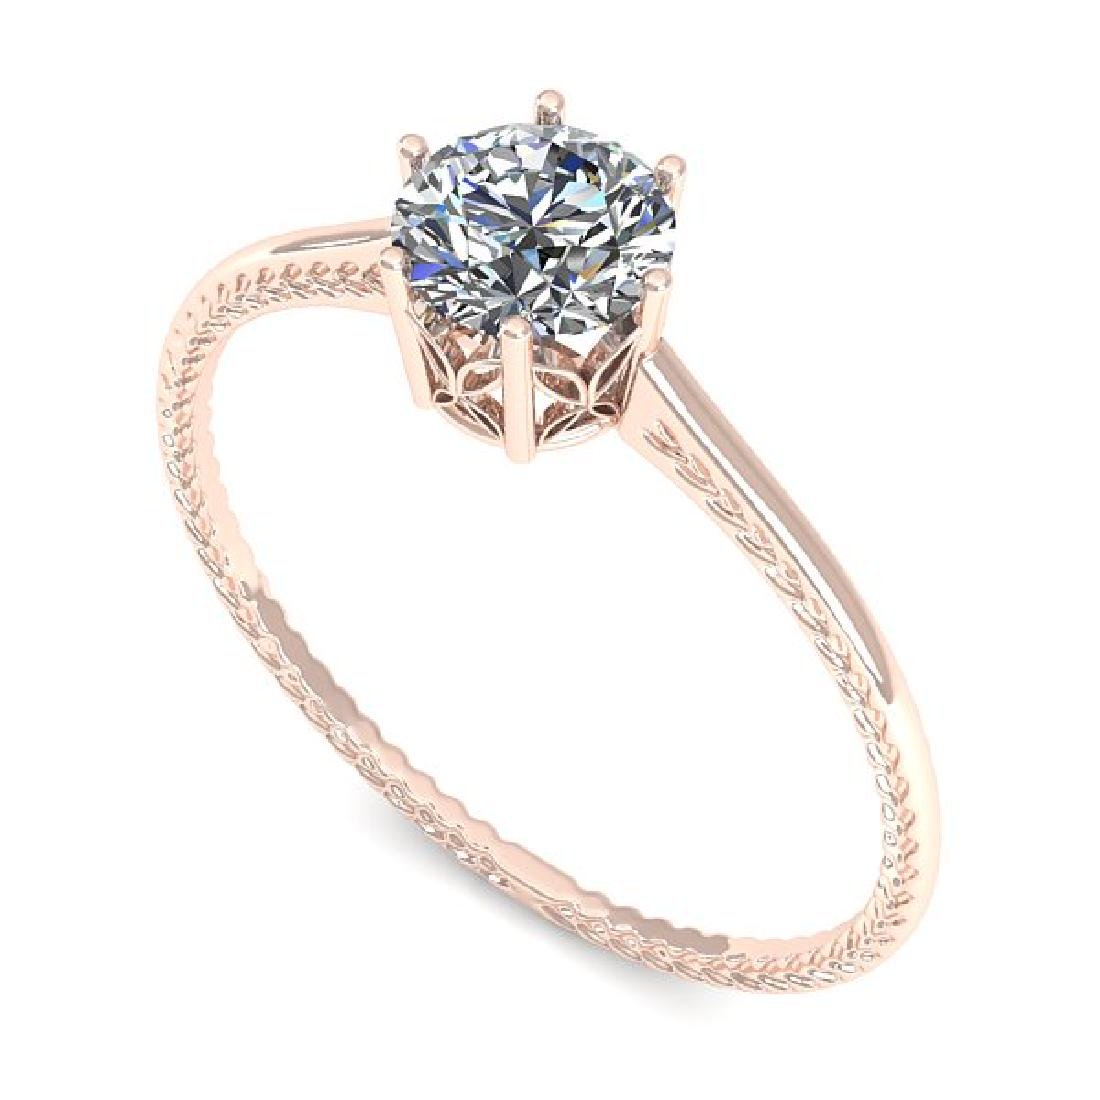 0.50 CTW VS/SI Diamond Art Deco Ring 14K Rose Gold - 2